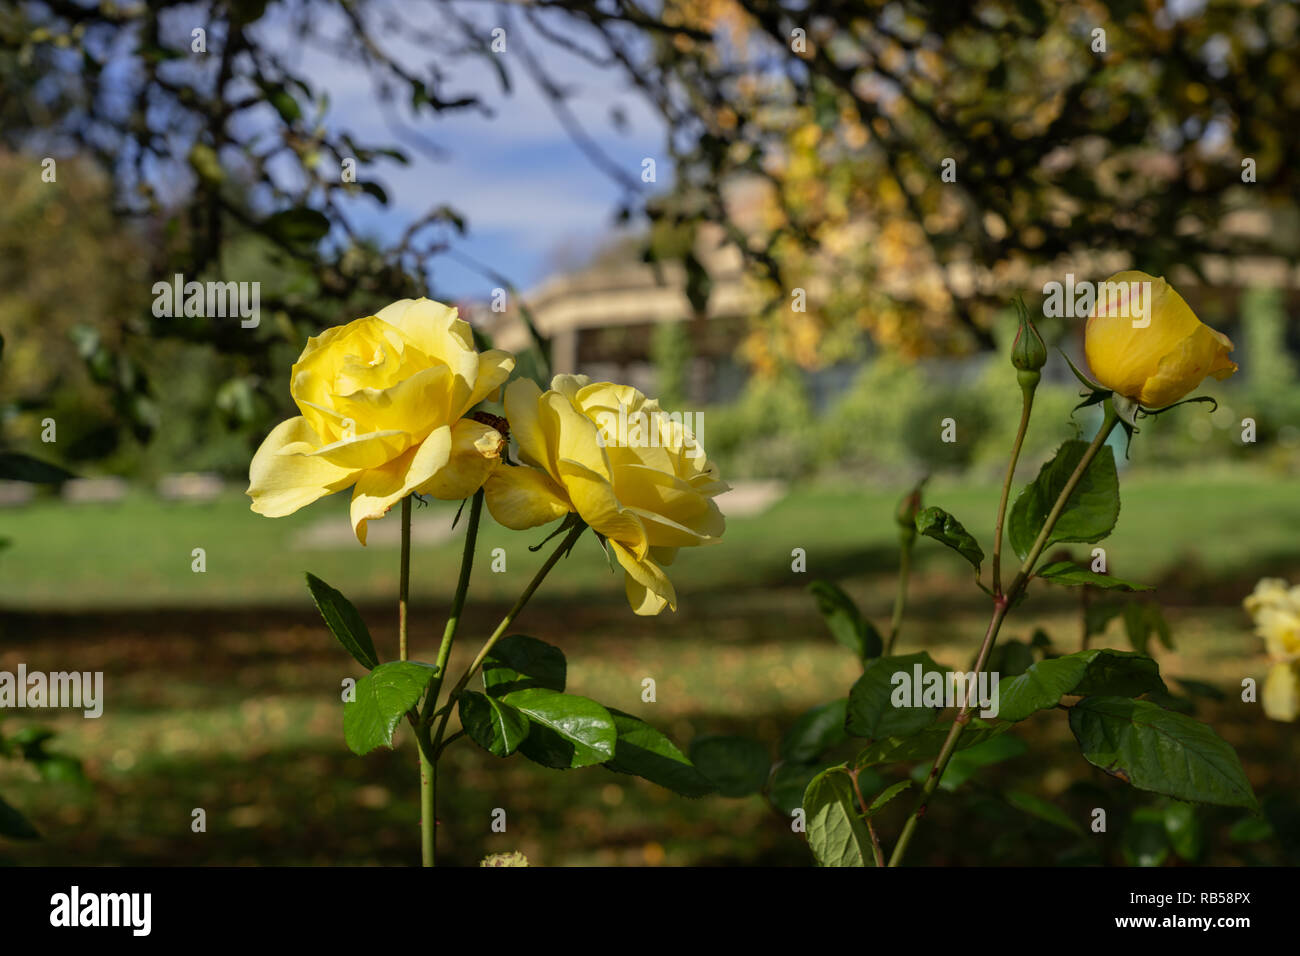 Beautiful sunlit autumn yellow Roses in the Valley Gardens,Harrogate,North Yorkshire,England,UK. - Stock Image